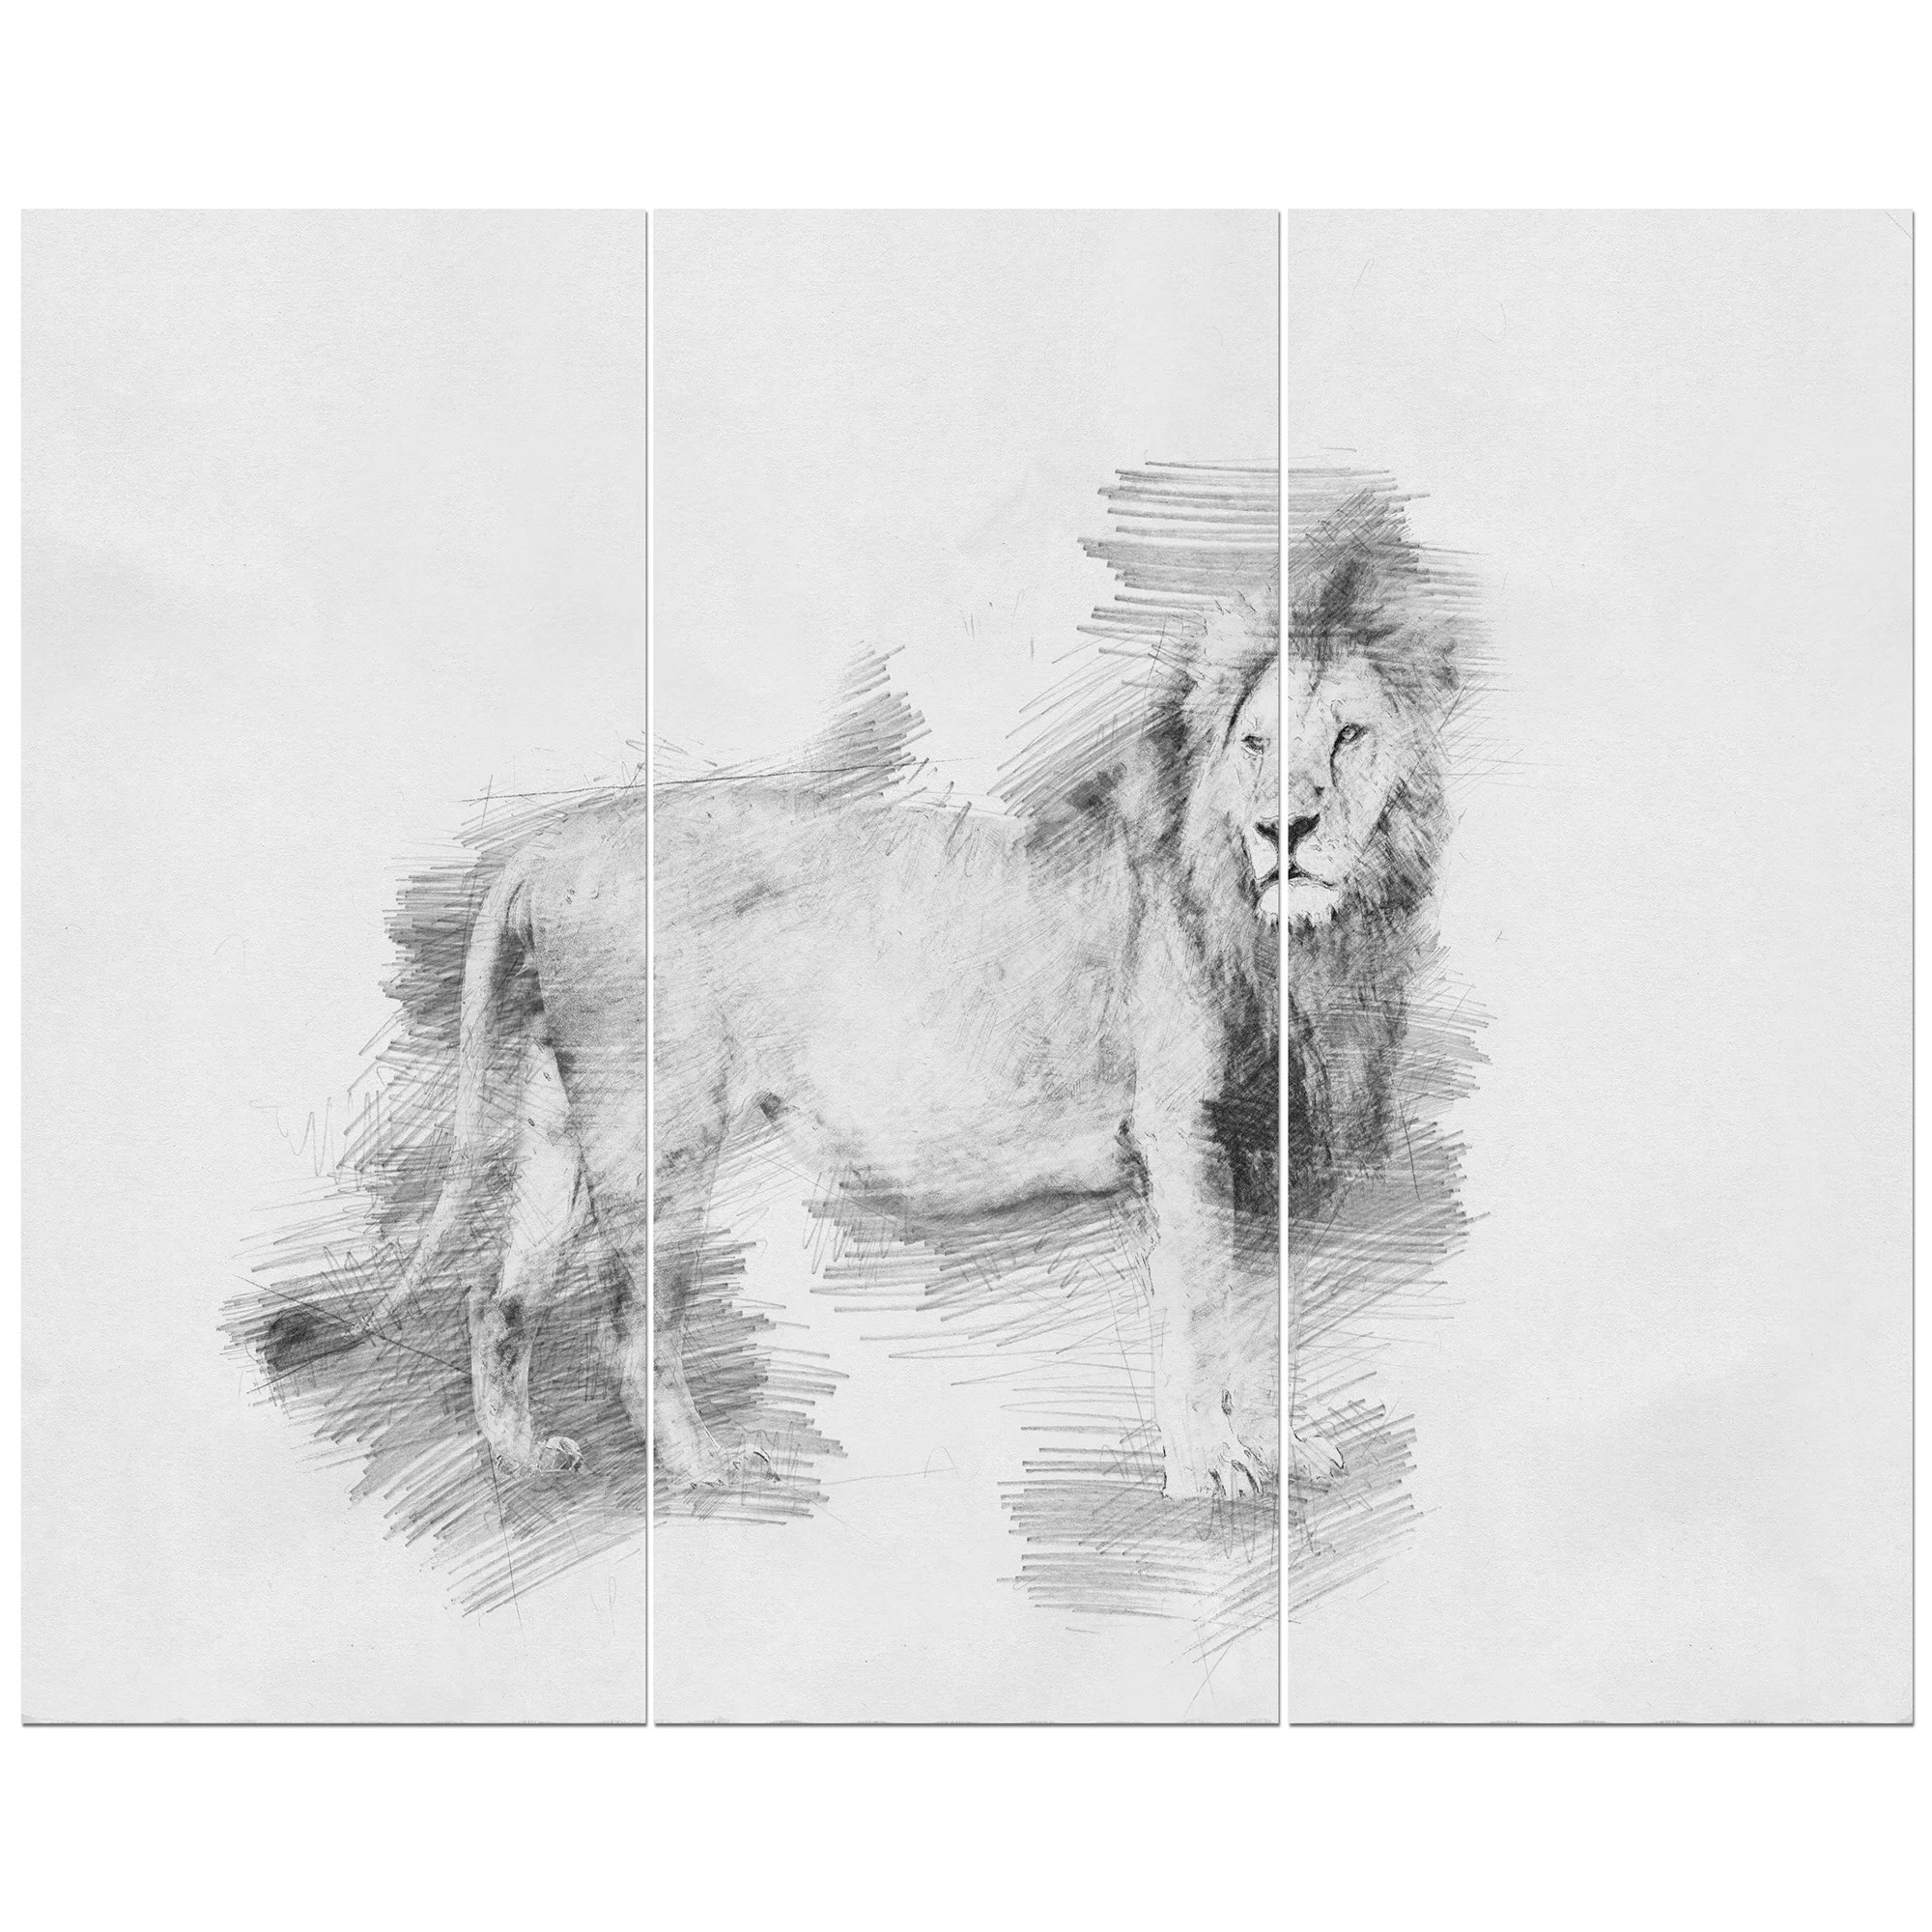 East Urban Home Black And White Lion Pencil Sketch Oil Painting Print Multi Piece Image On Wrapped Canvas Wayfair Ca